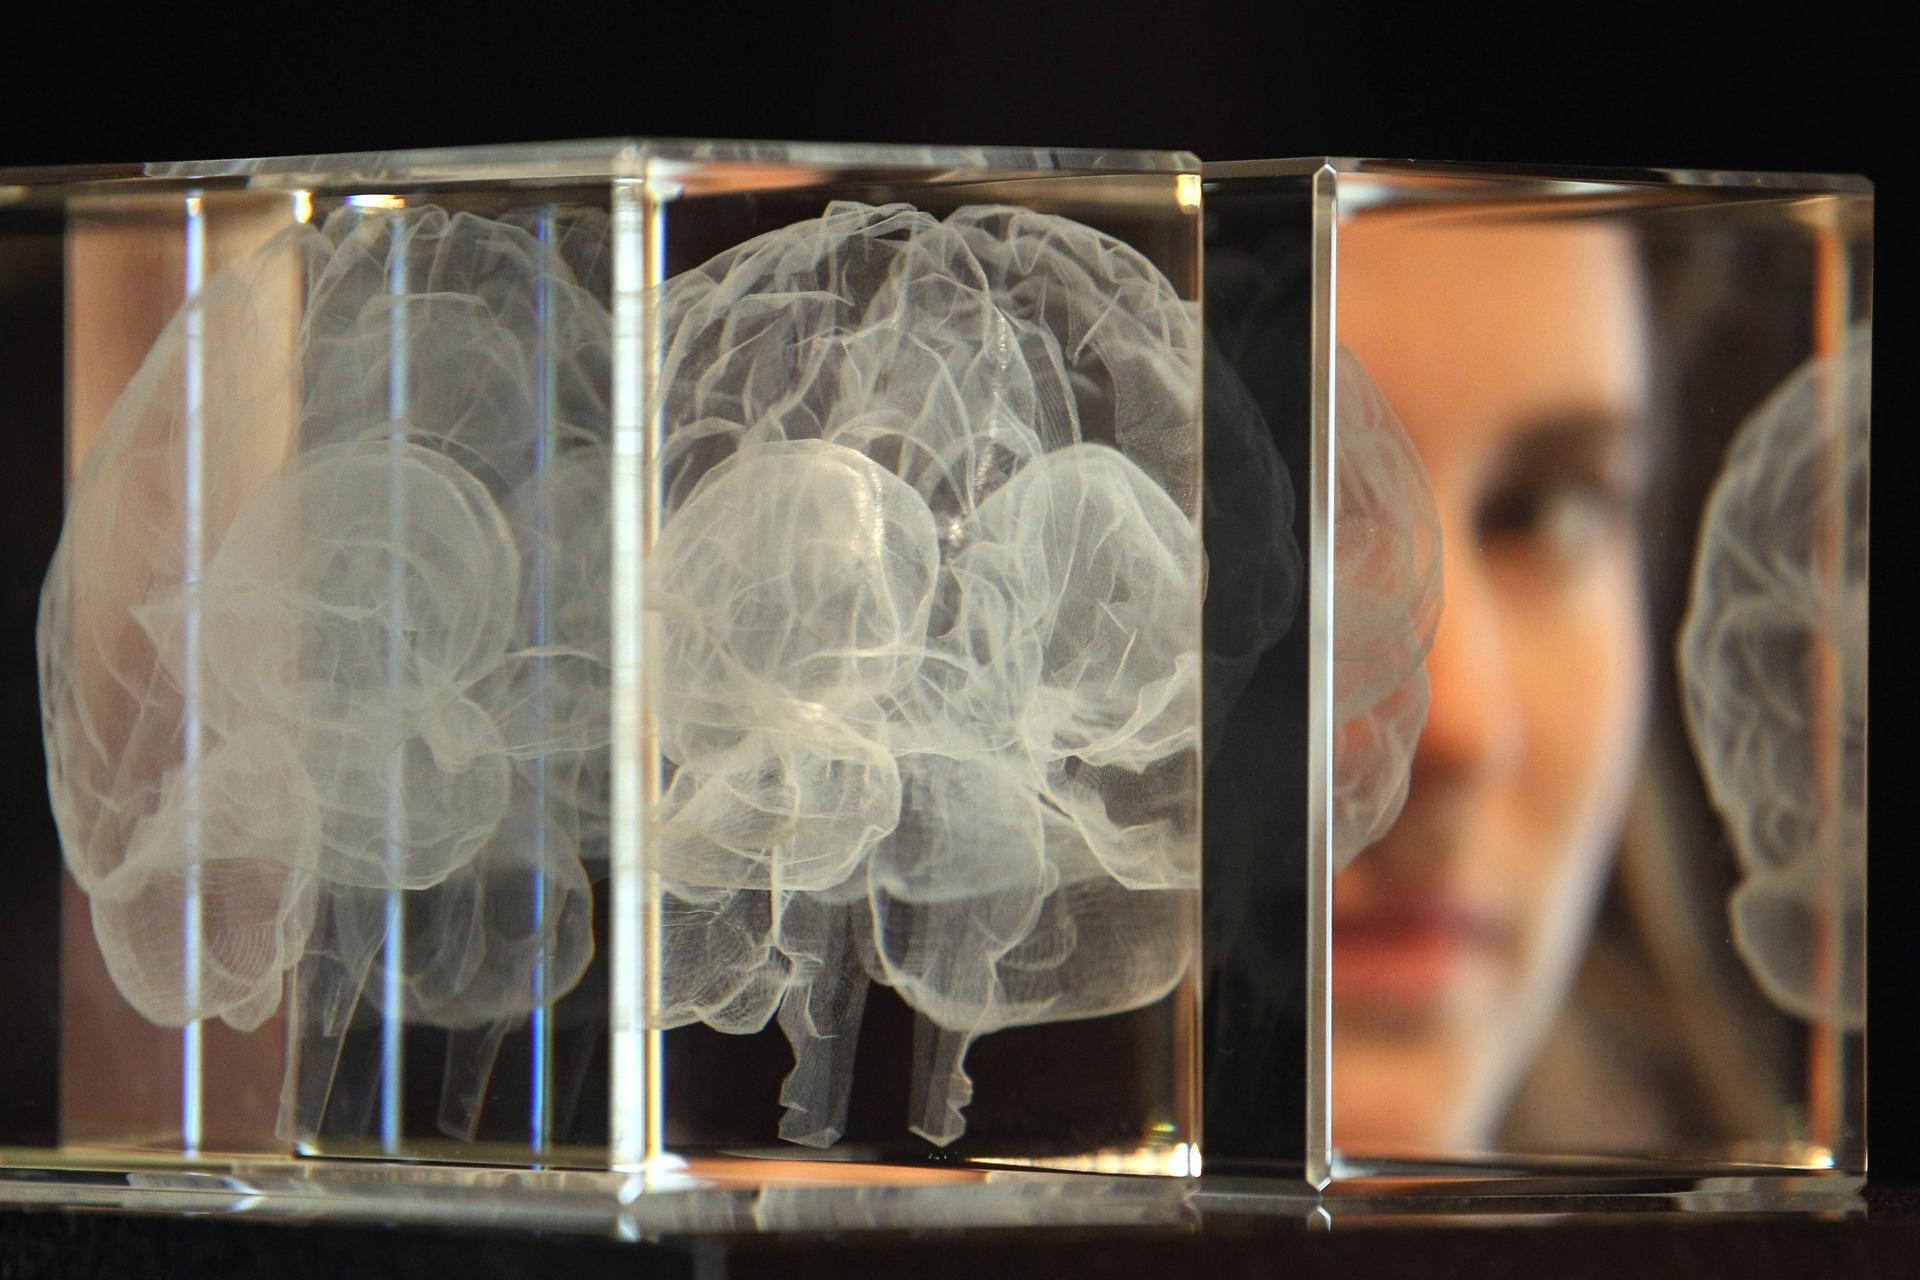 LONDON, ENGLAND - MARCH 27: Wellcome trust employee Zoe Middleton poses behind an artwork entitled 'My Soul' by Katharine Dowson, which consists of a laser etched lead chrystal glass formation in the shape of a brain, and was created using the artists own MRI Scan, at Wellcome Collection on March 27, 2012 in London, England. The exhibit makes up part of the Wellcome Collection's major new exhibition, 'Brains' which includes slices of Einstein's brain, 3000 year old trepanned skulls, ancient Egyptian mummified brains and brains in jars, and opens to the public from March 29 June 17, 2012. (Photo by Dan Kitwood/Getty Images)